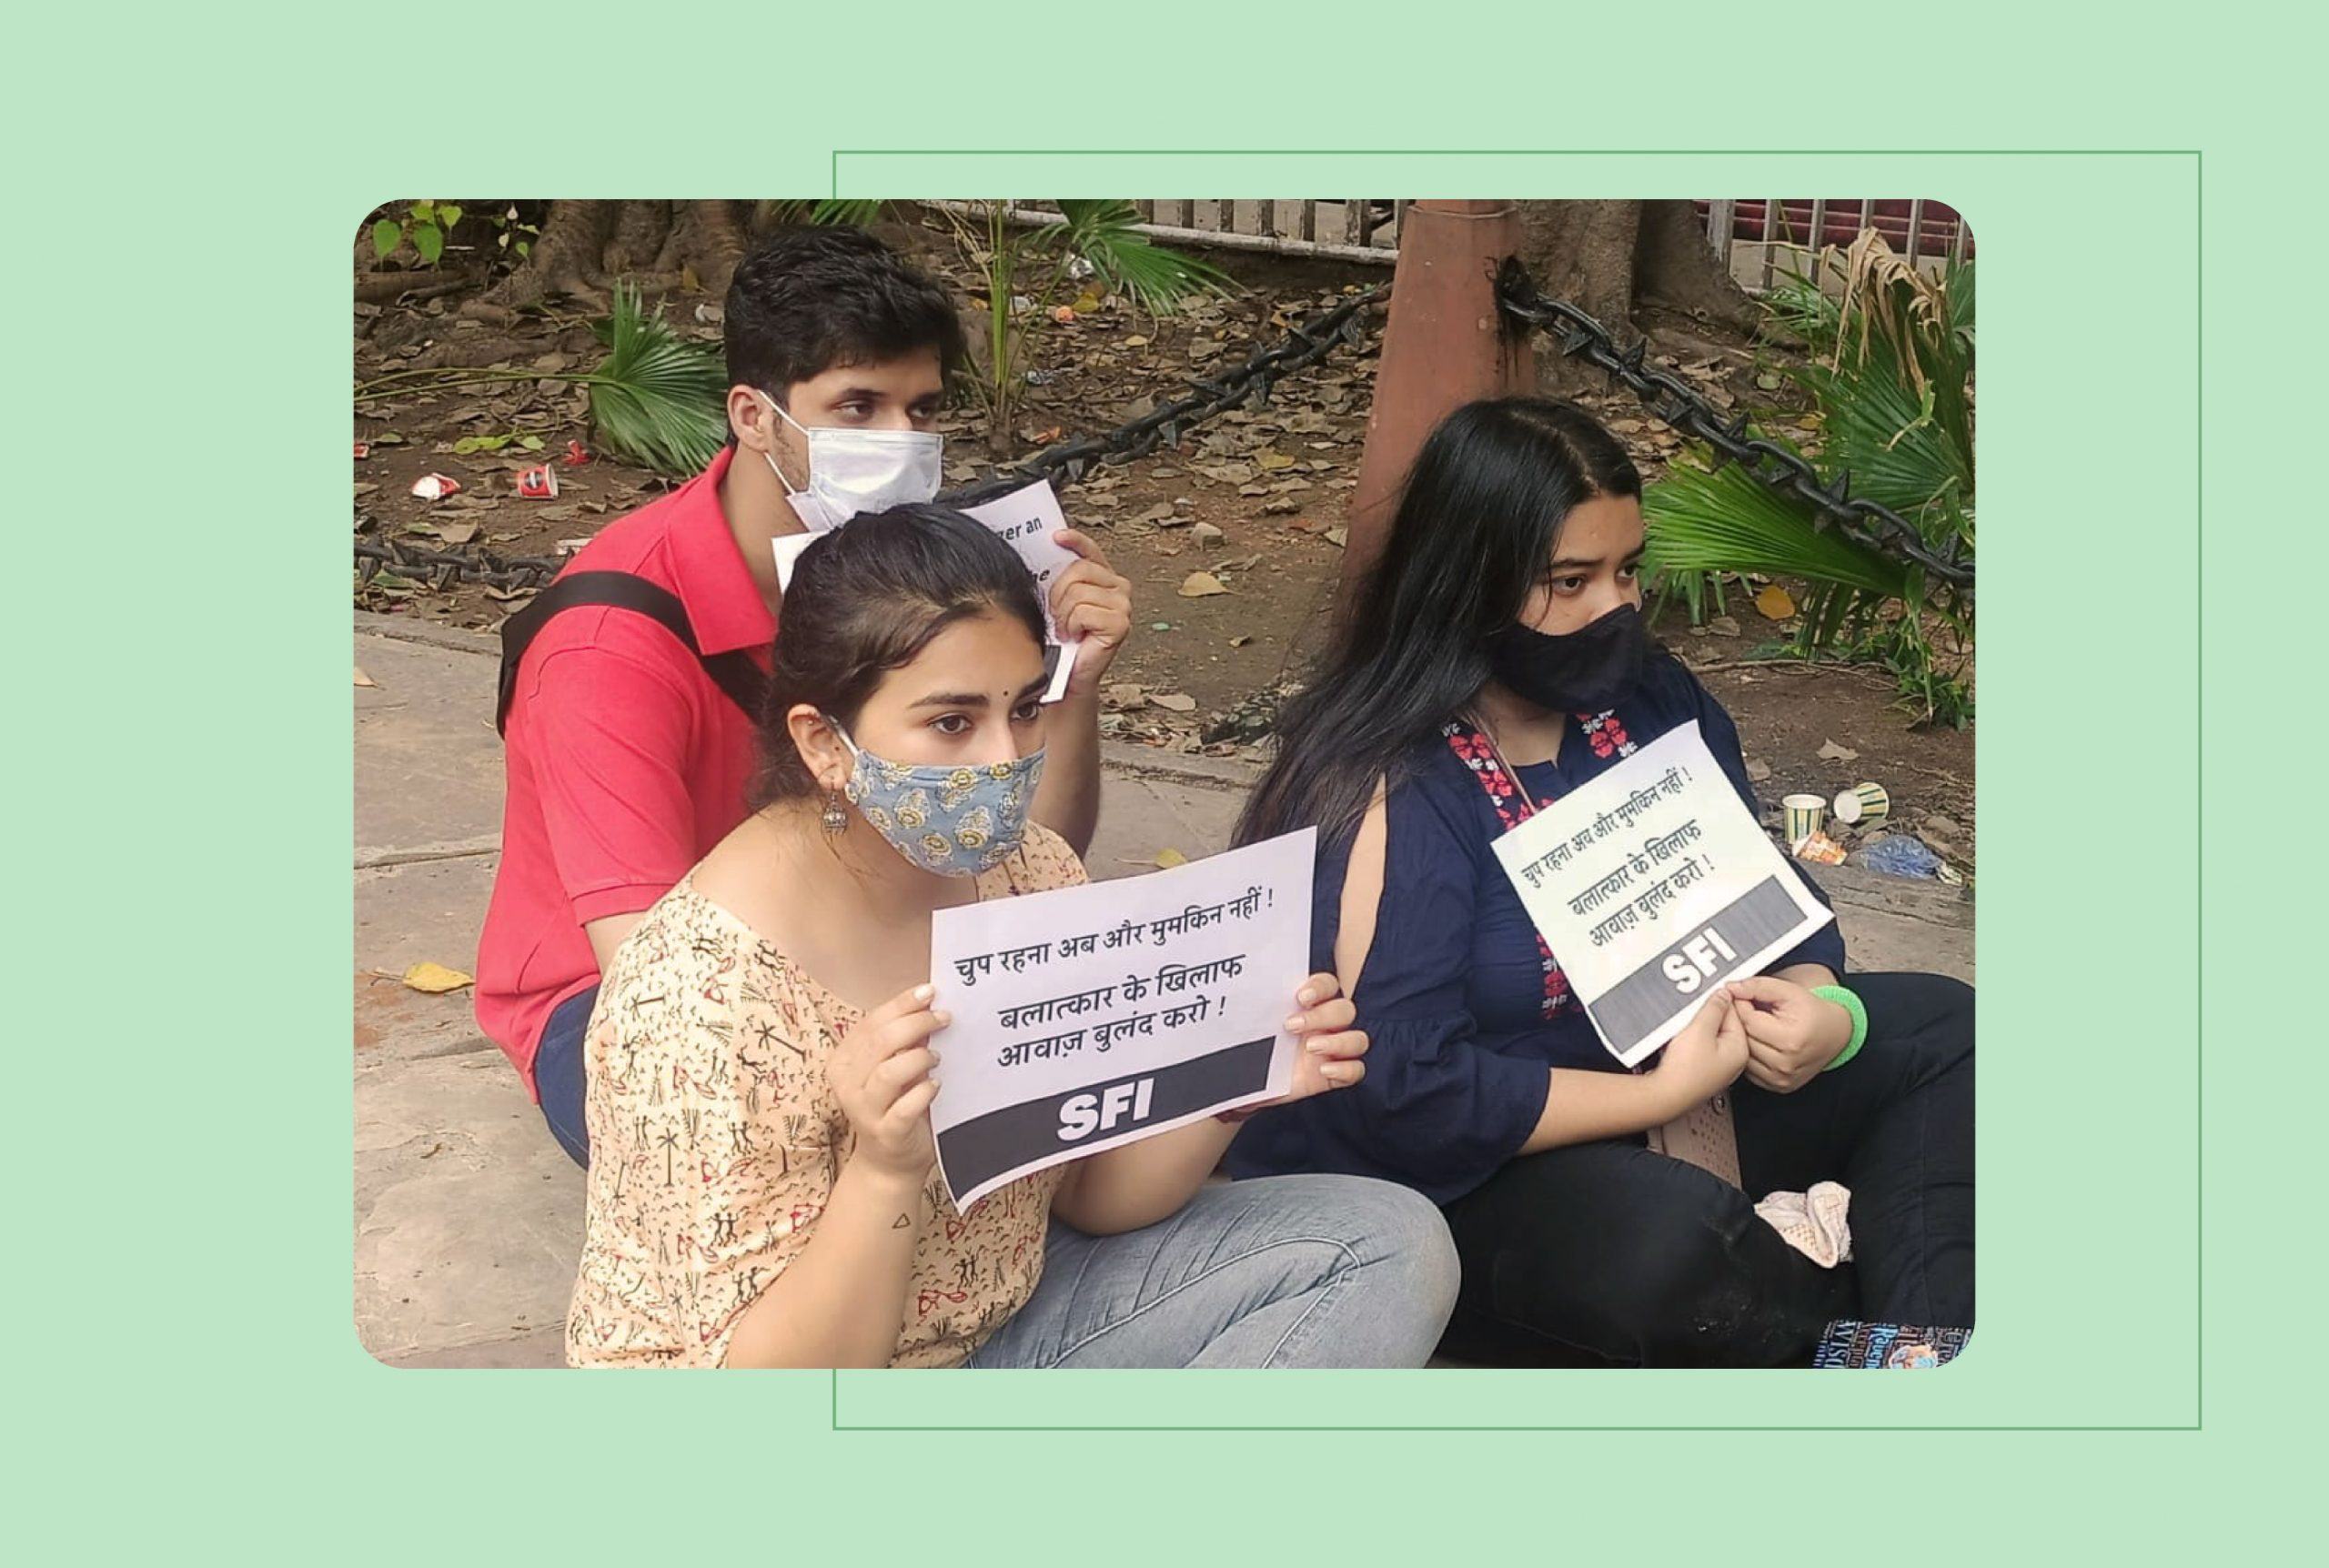 Image shows three young Indians sitting in protest with placards protesting the rape and murder of a 9 year old Dalit girl in Delhi